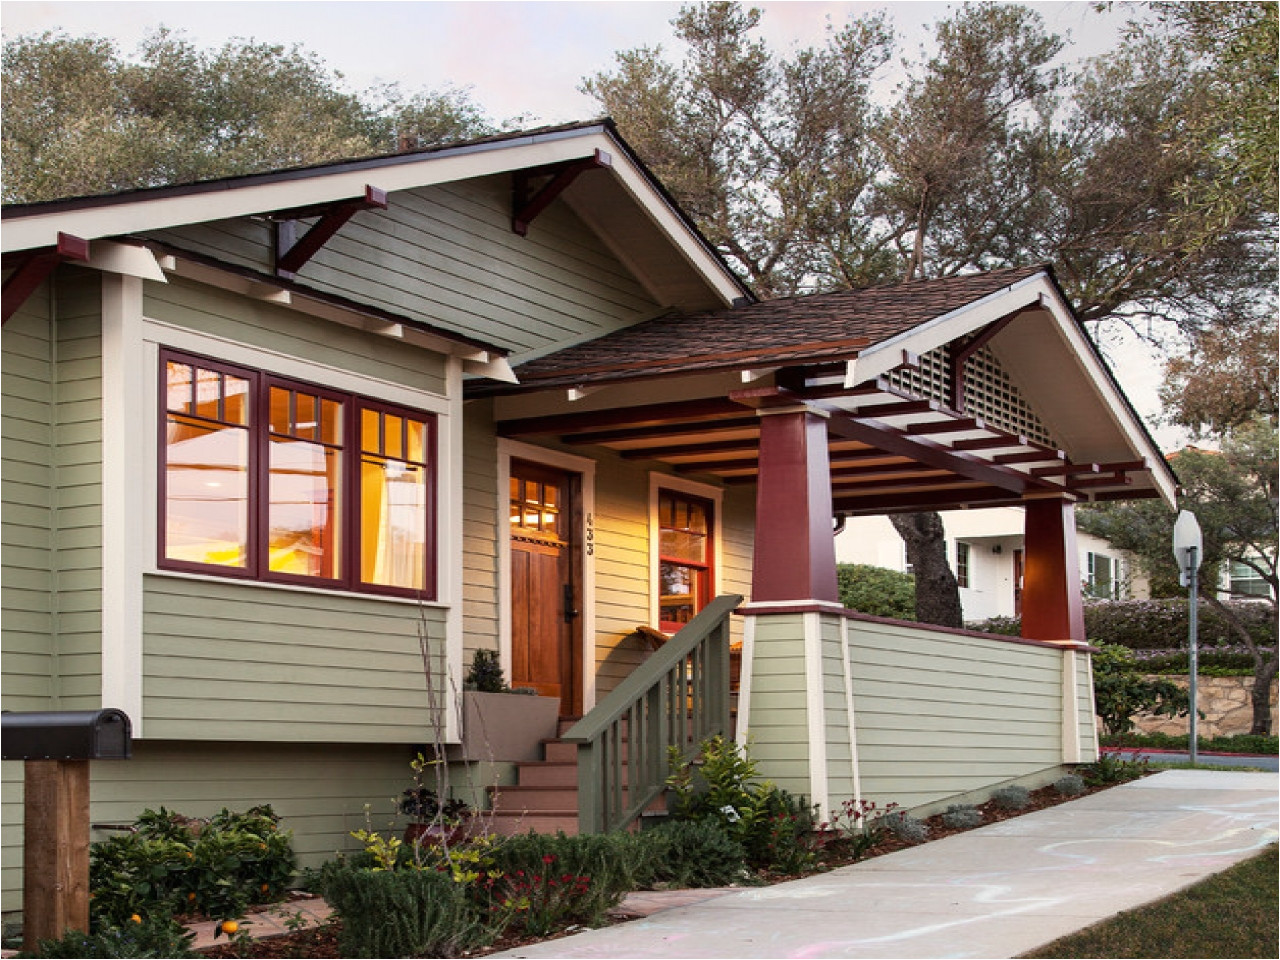 14dfddd3c43cd56a small house plans craftsman bungalow craftsman bungalow front porches